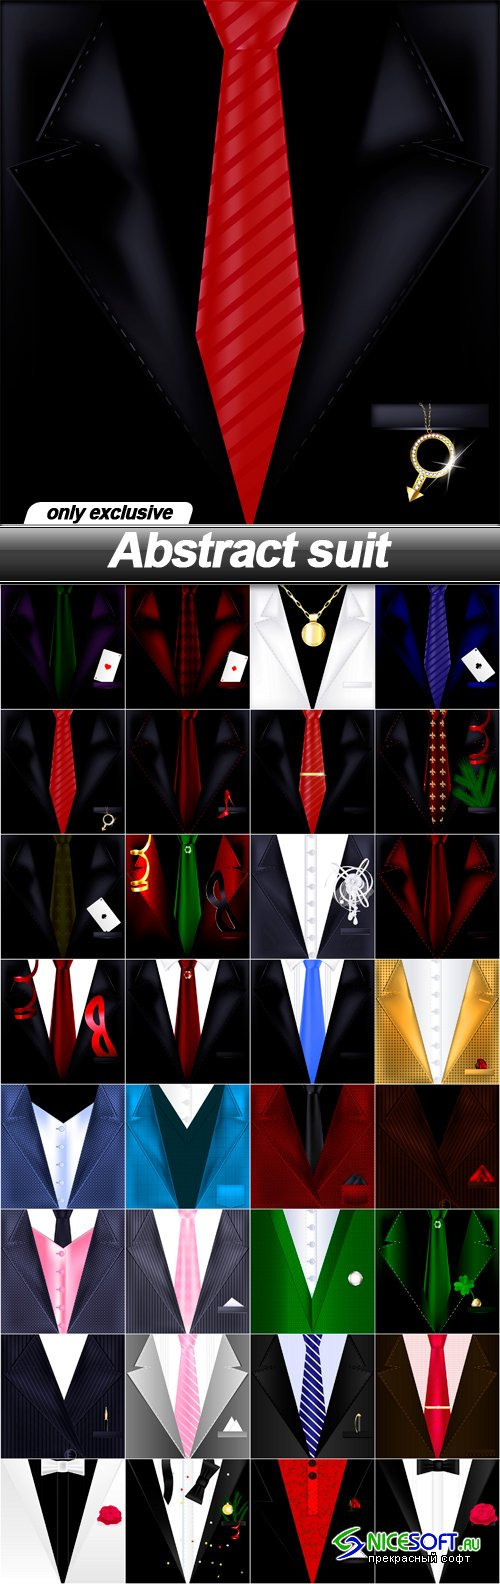 Abstract suit